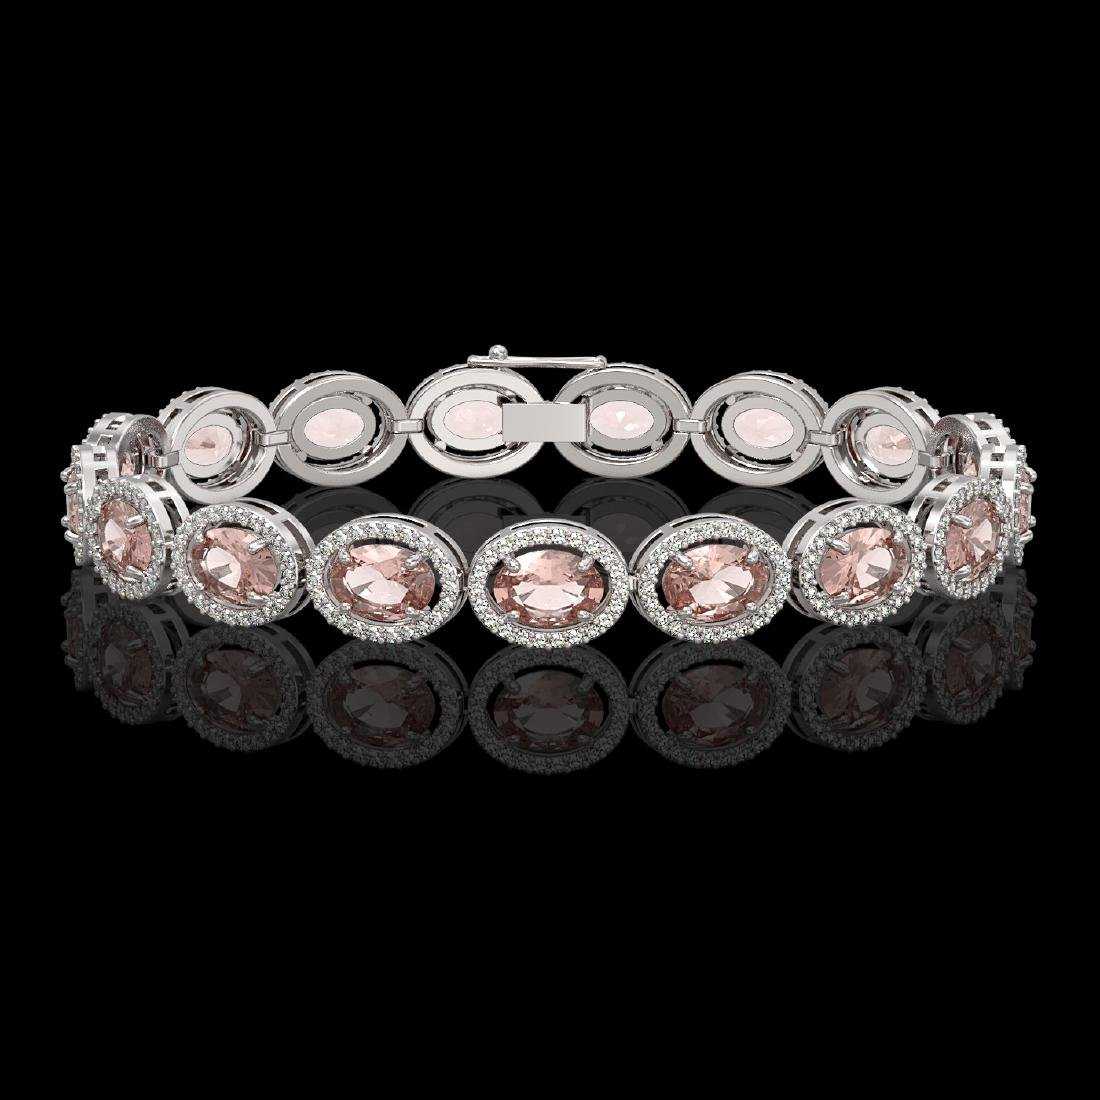 20.18 CTW Morganite & Diamond Halo Bracelet 10K White